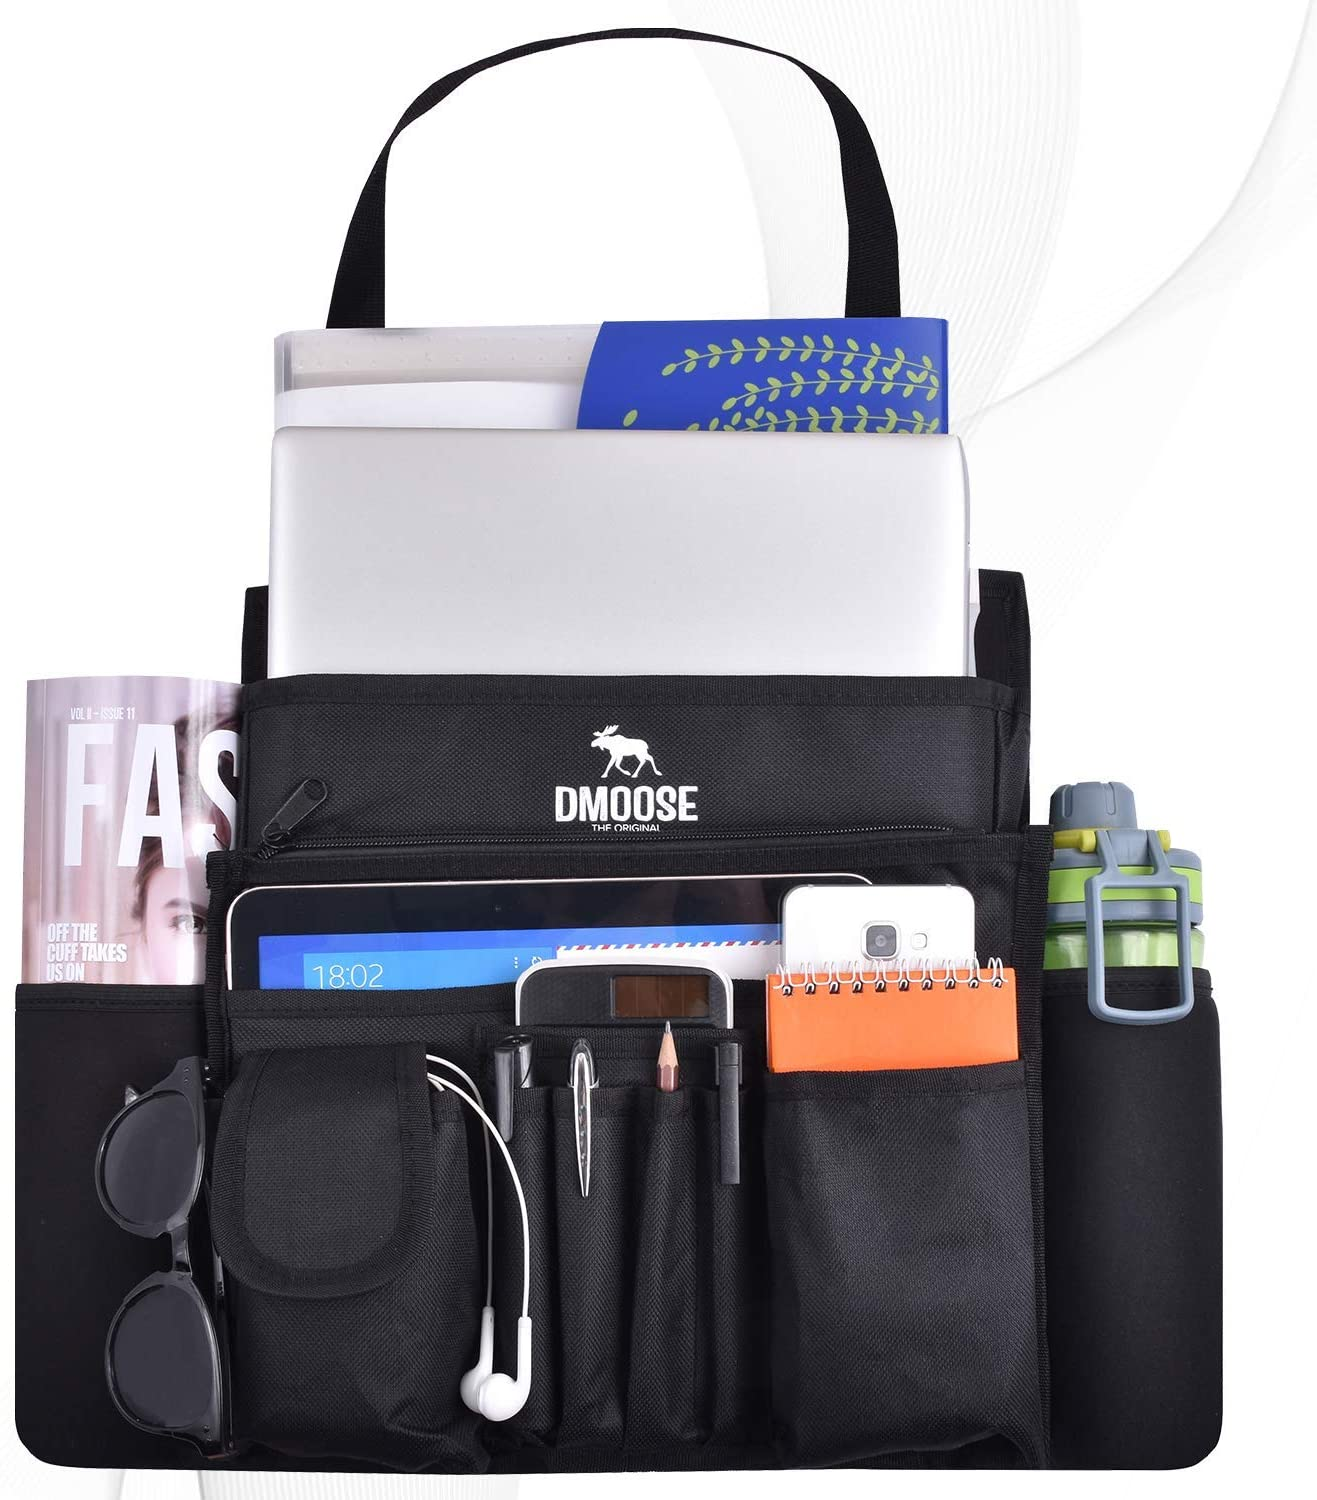 Dmoose Car Front Seat Organizer with laptop, sunglasses, a water bottle, a magazine and more